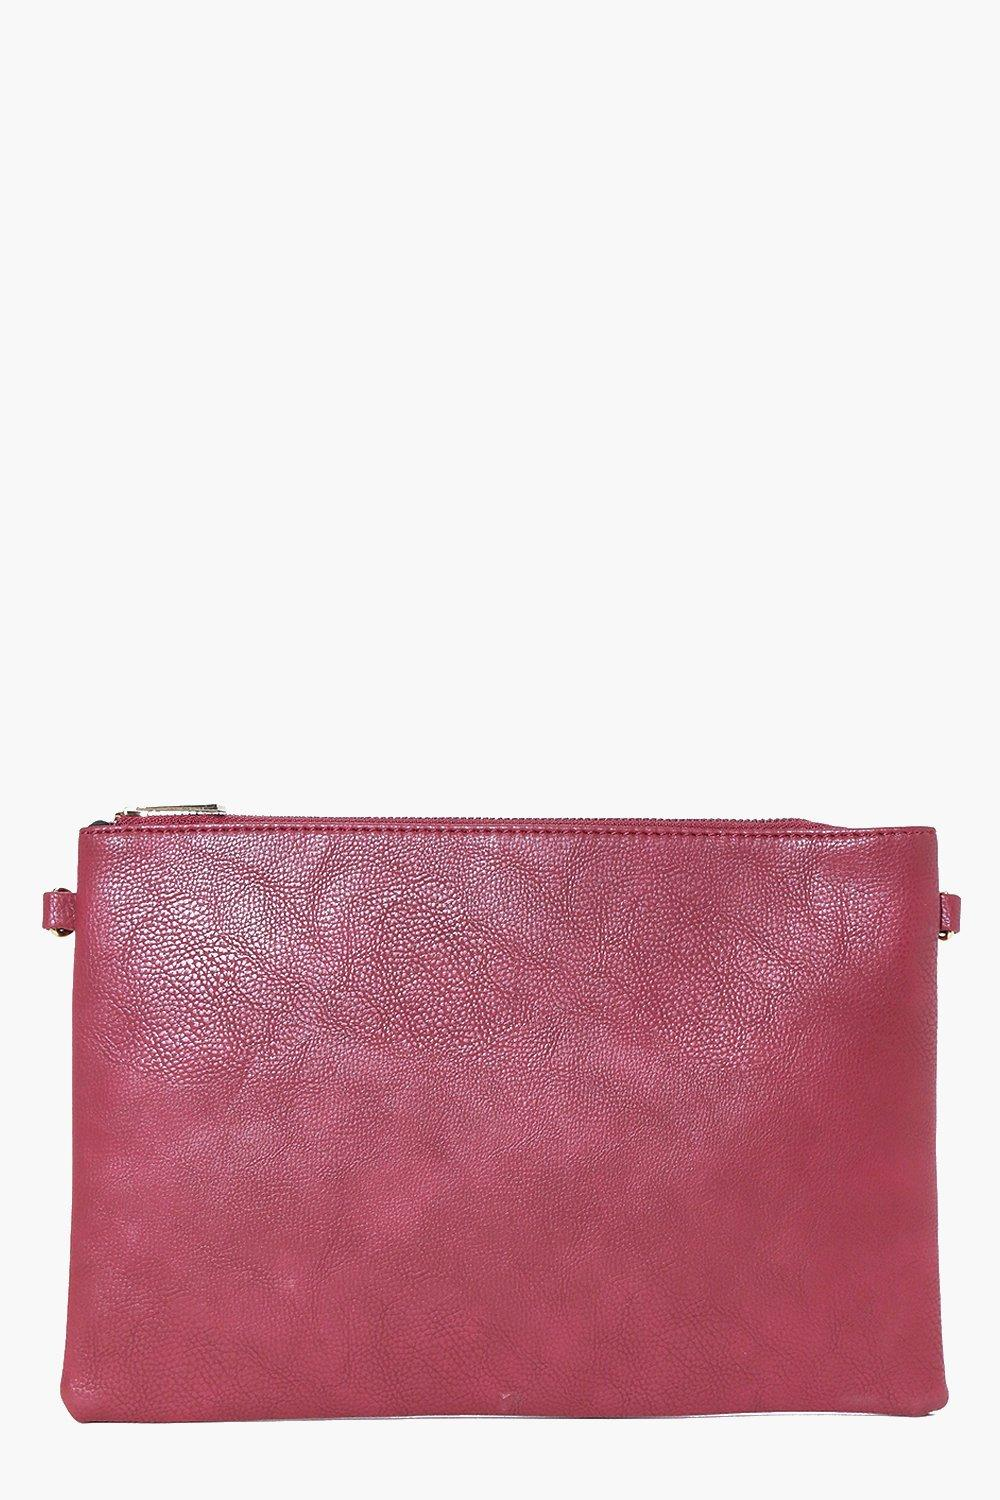 Zip Top Clutch Bag berry